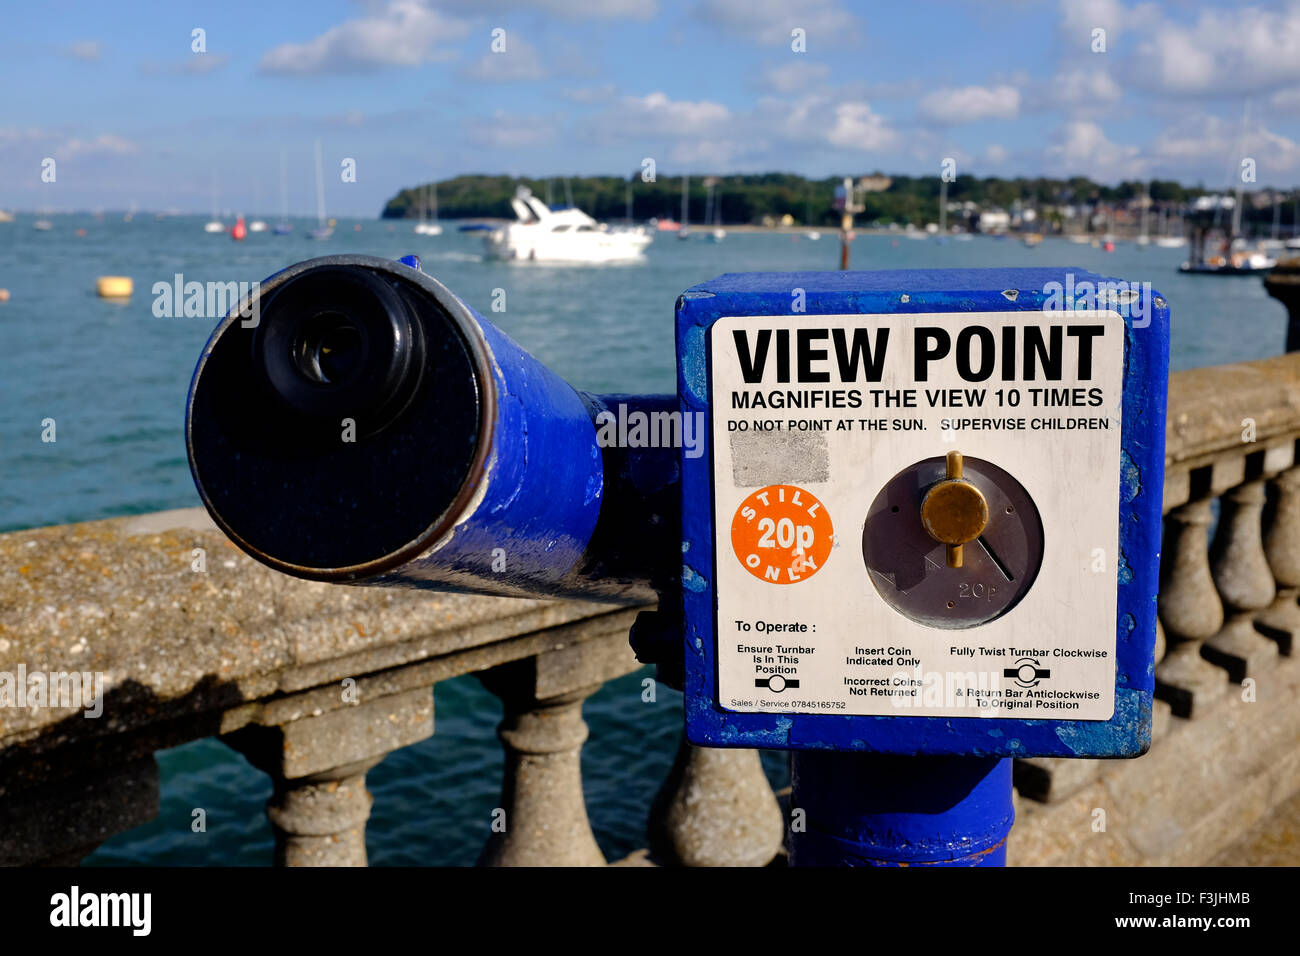 Seaside telescope spotting scope spottongscope view point 20p magnify the view 10 times Cowes Harbour Isle of Wight - Stock Image